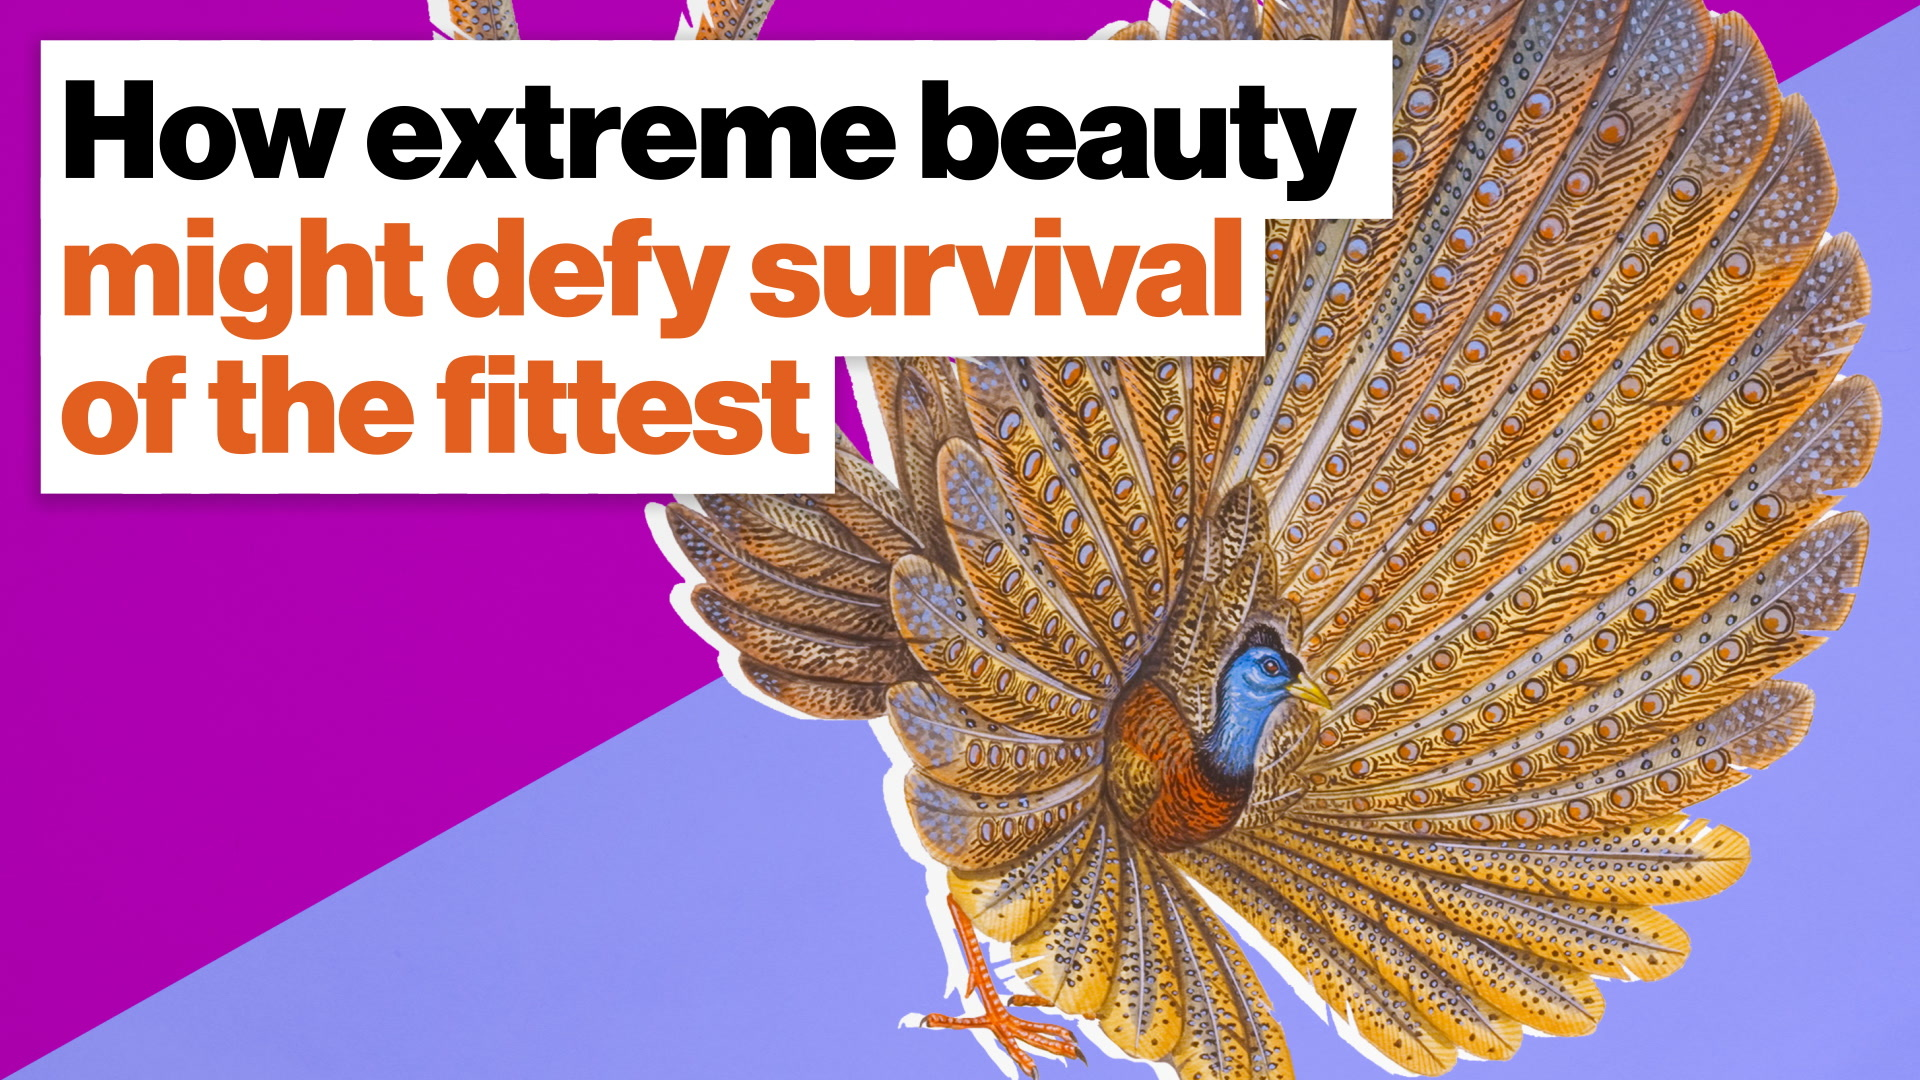 How extreme beauty might defy survival of the fittest